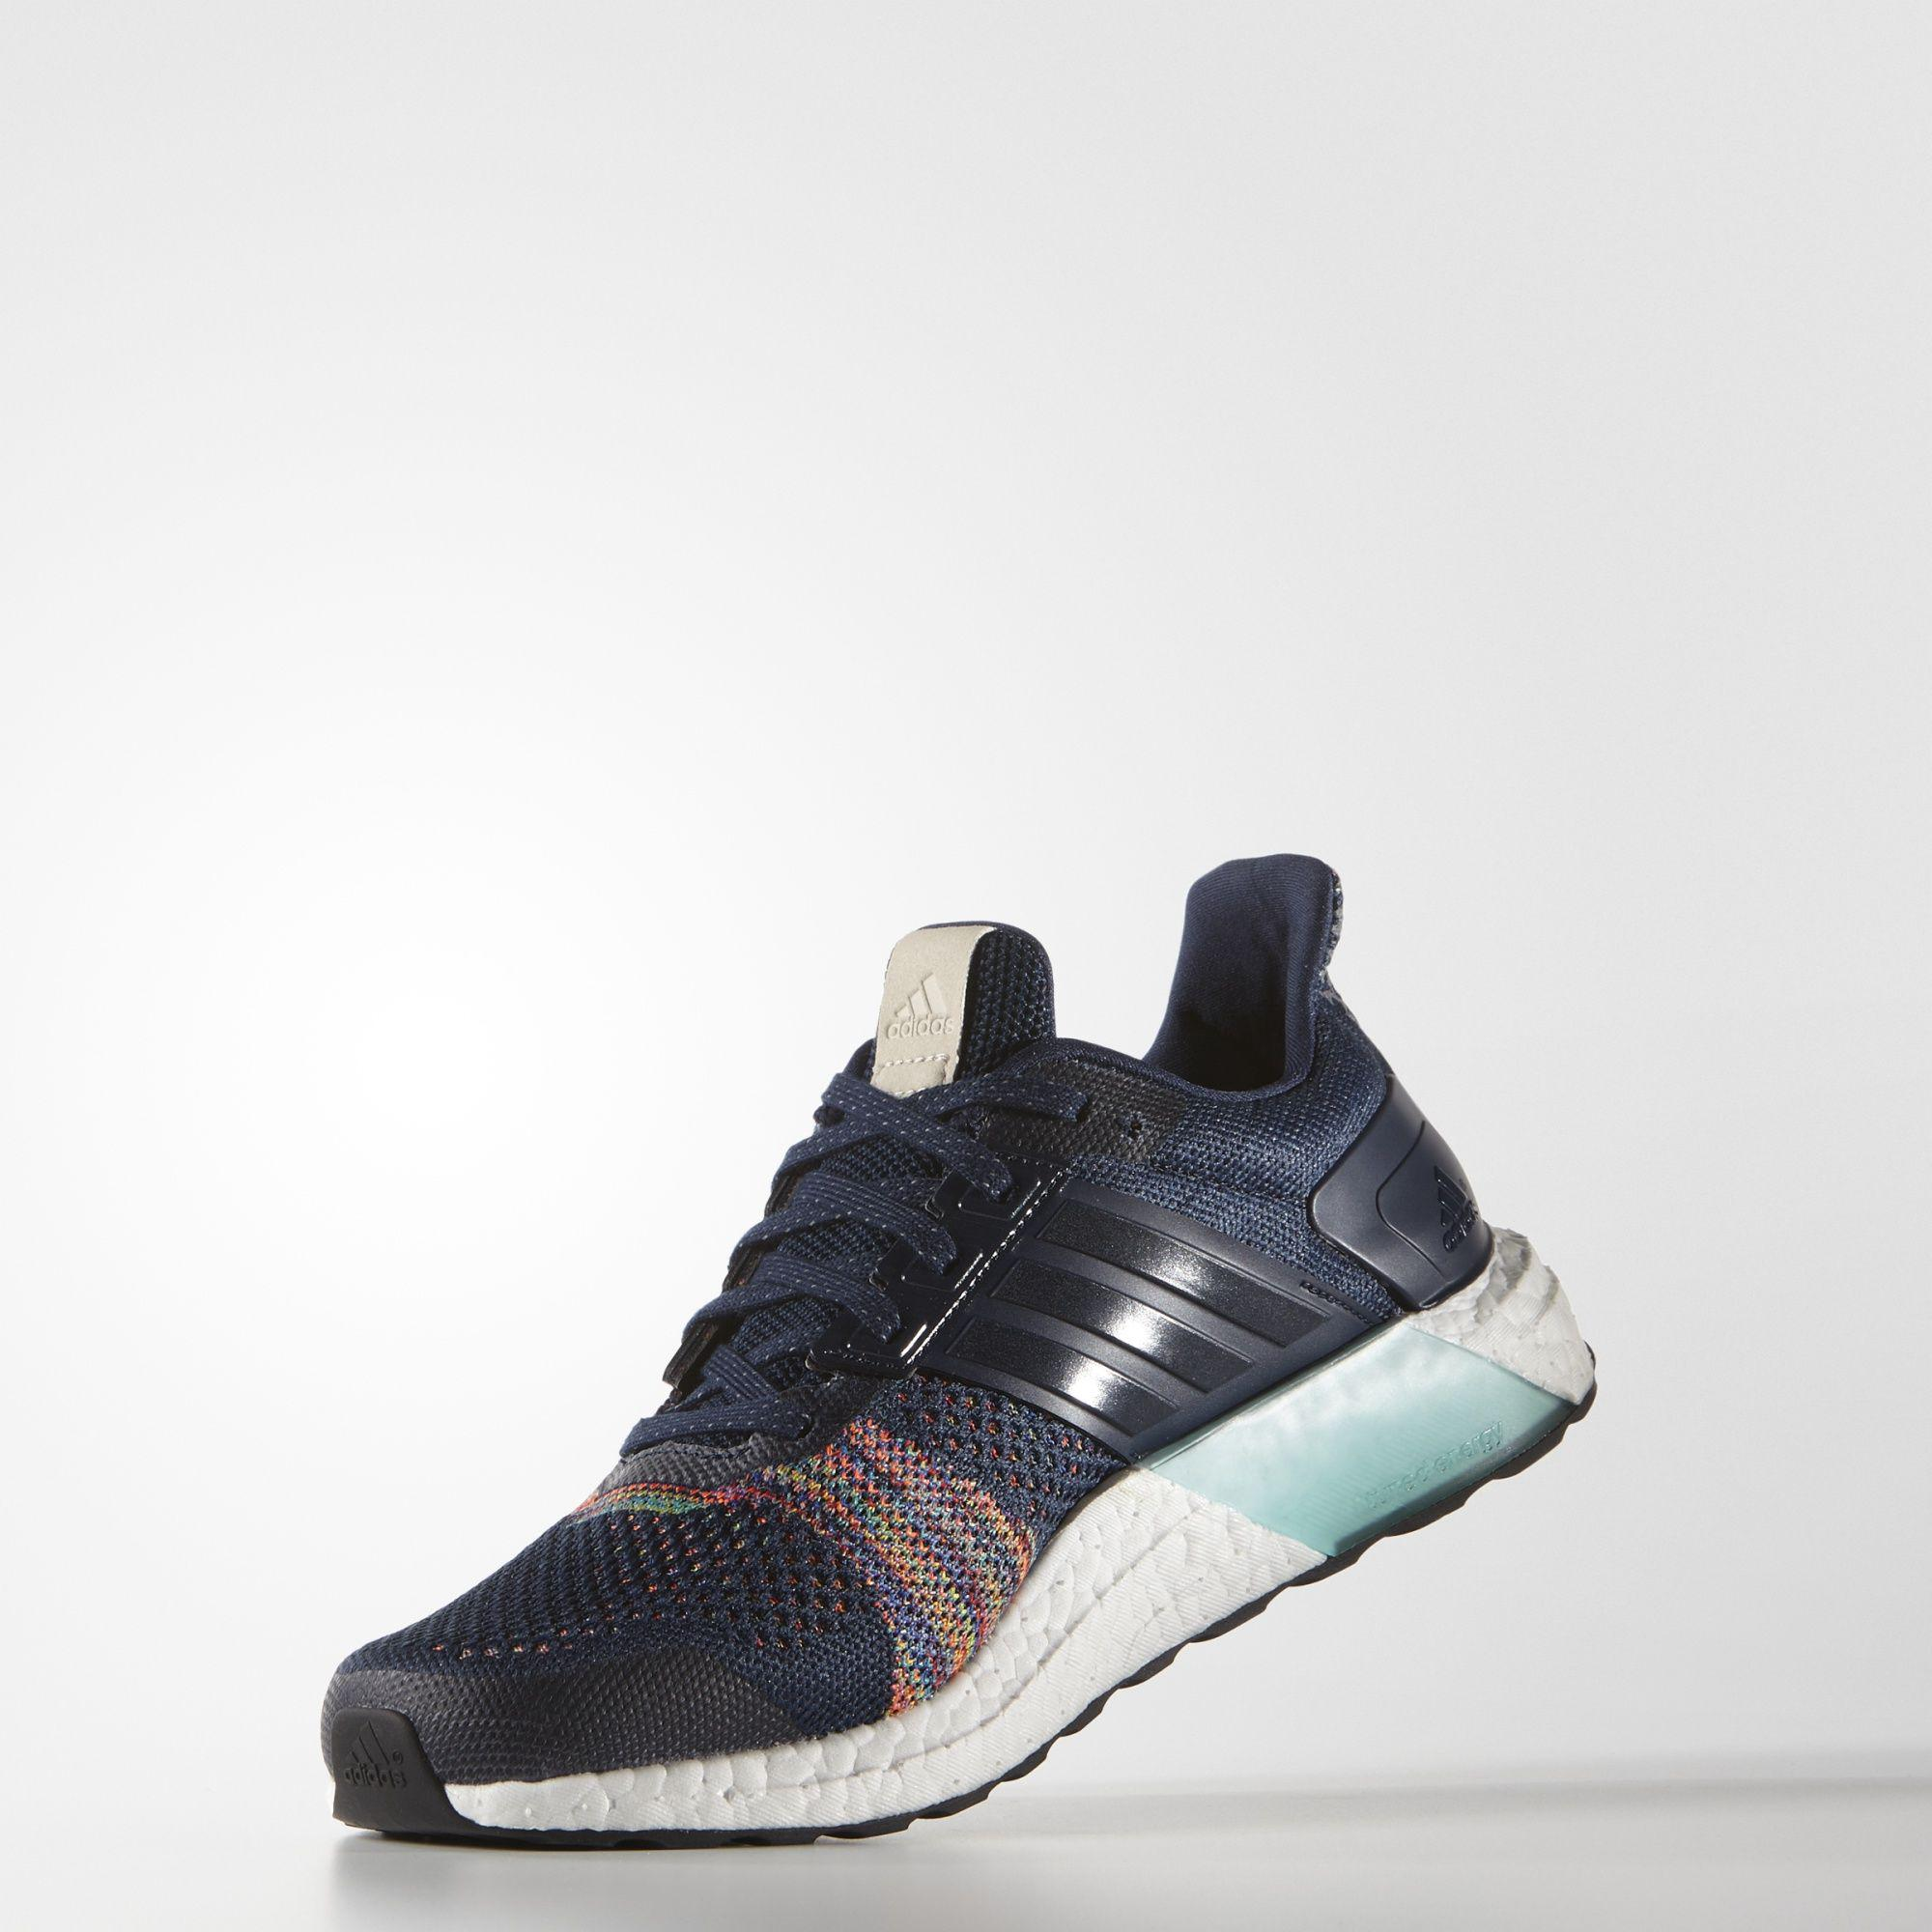 Adidas Ultra Boost Rainbow Limited